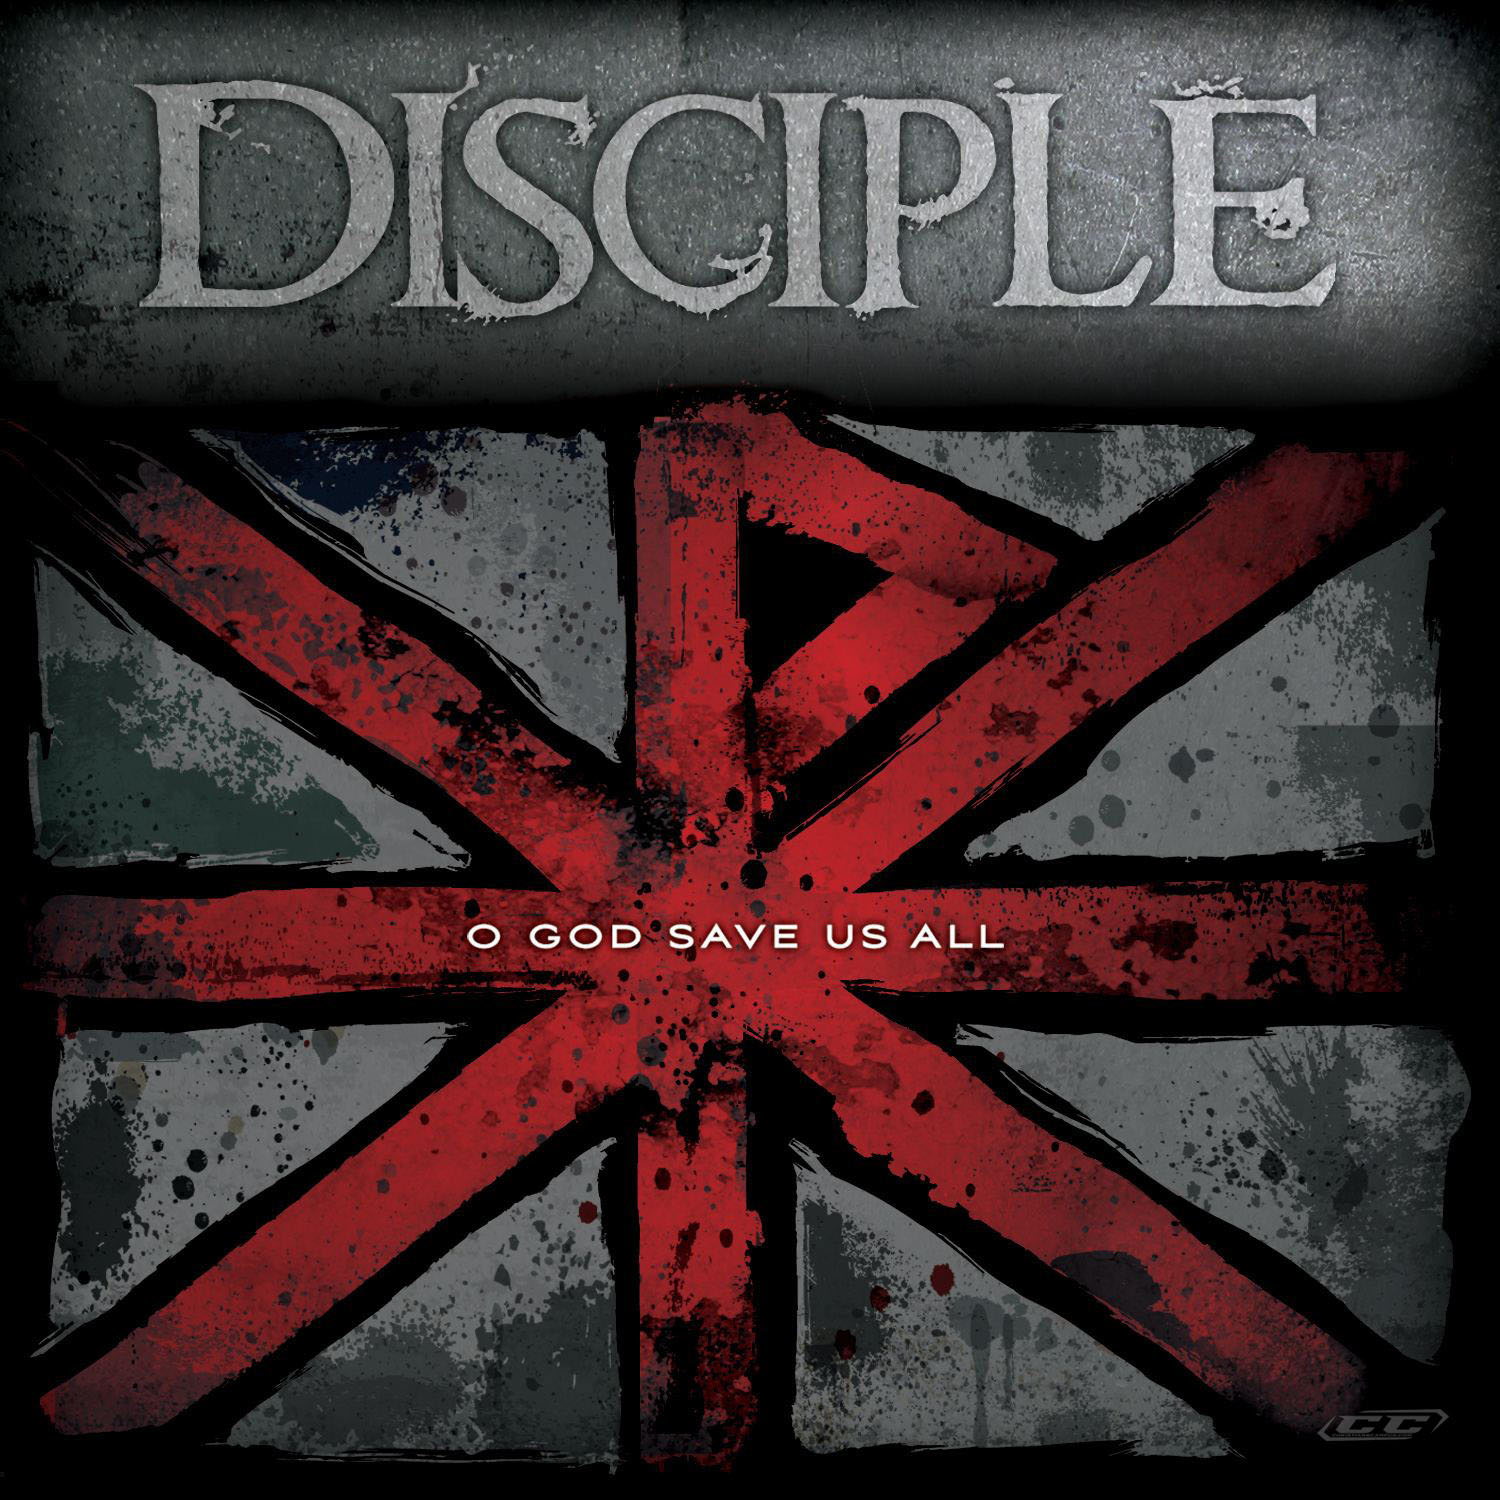 Disciple - O God Save Us All 2012 English Christian Album Download